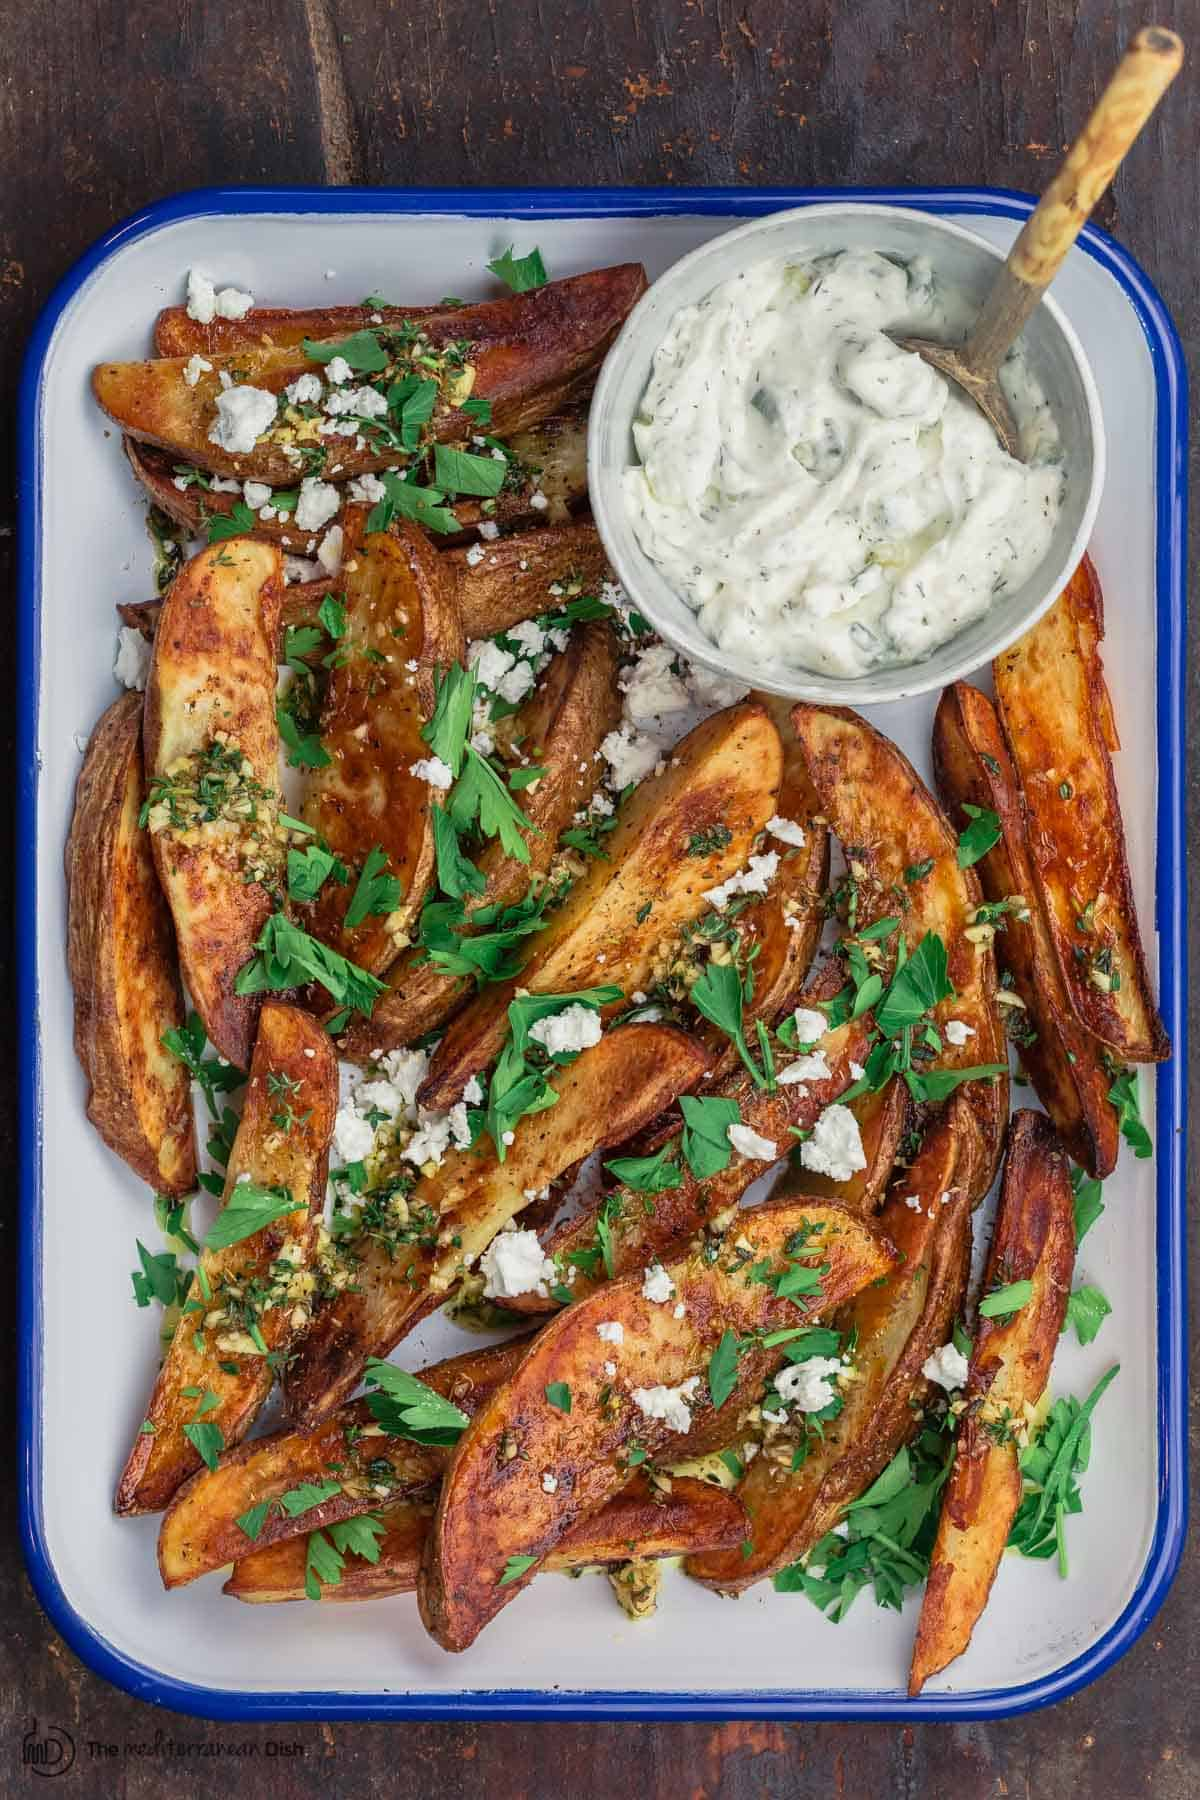 Oven fries with feta cheese and a side of tzatziki sauce